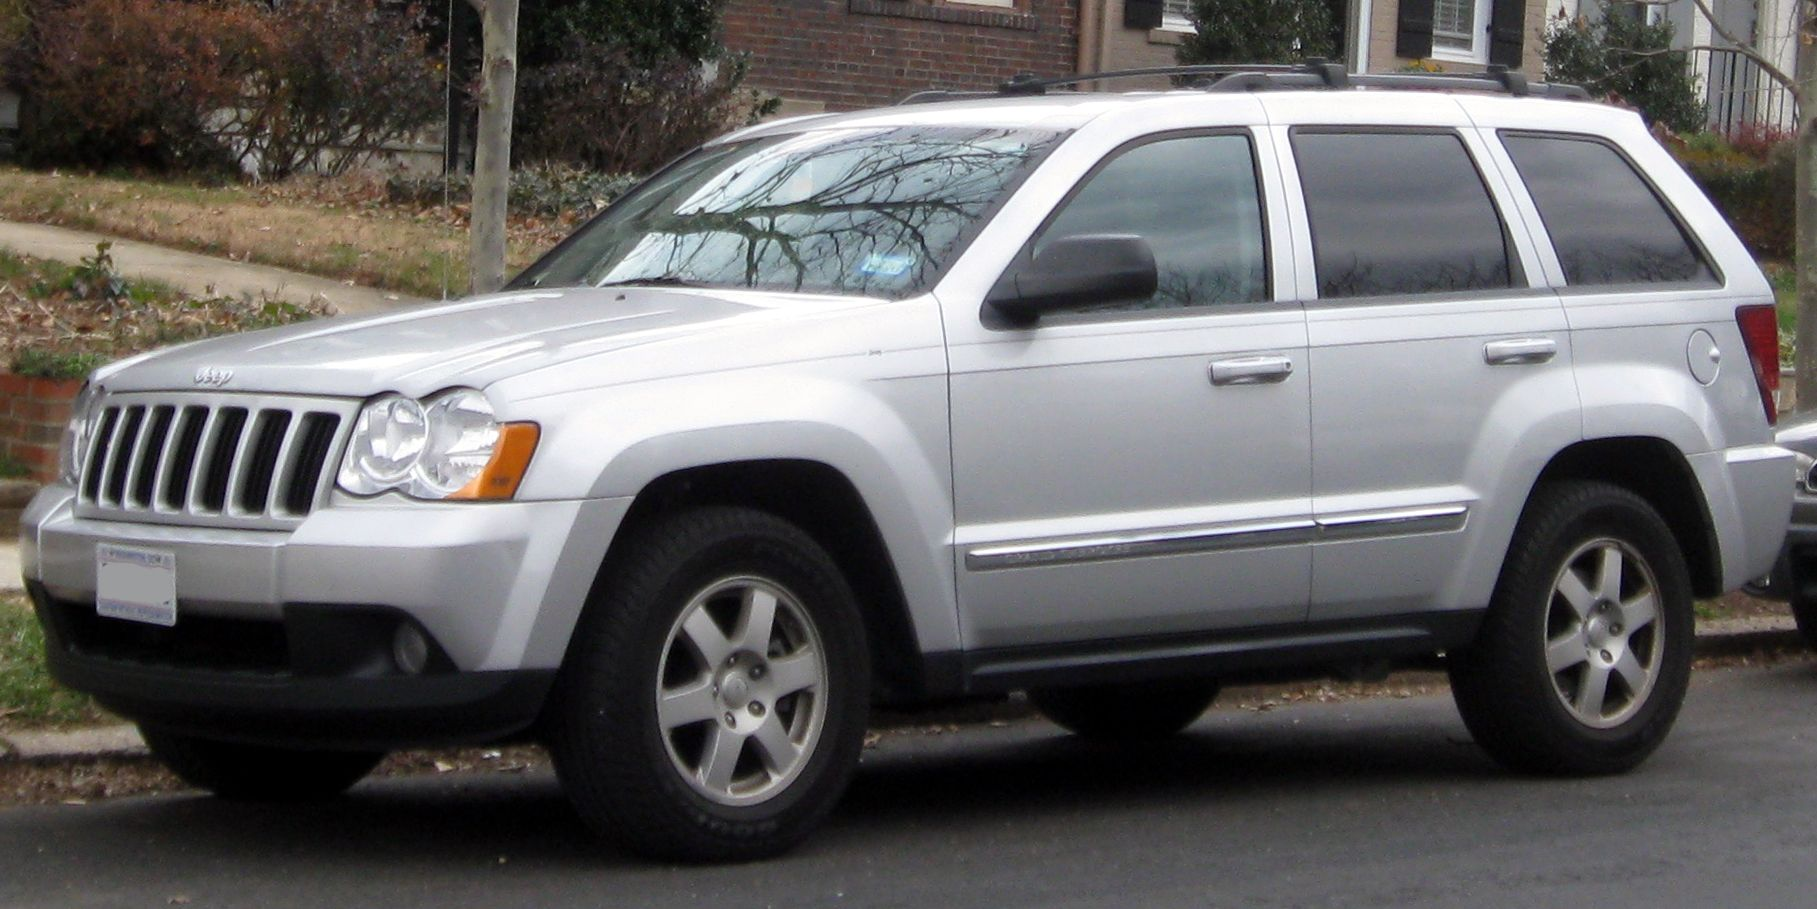 2007 jeep grand cherokee laredo recalls jpeg http carimagescolay casa